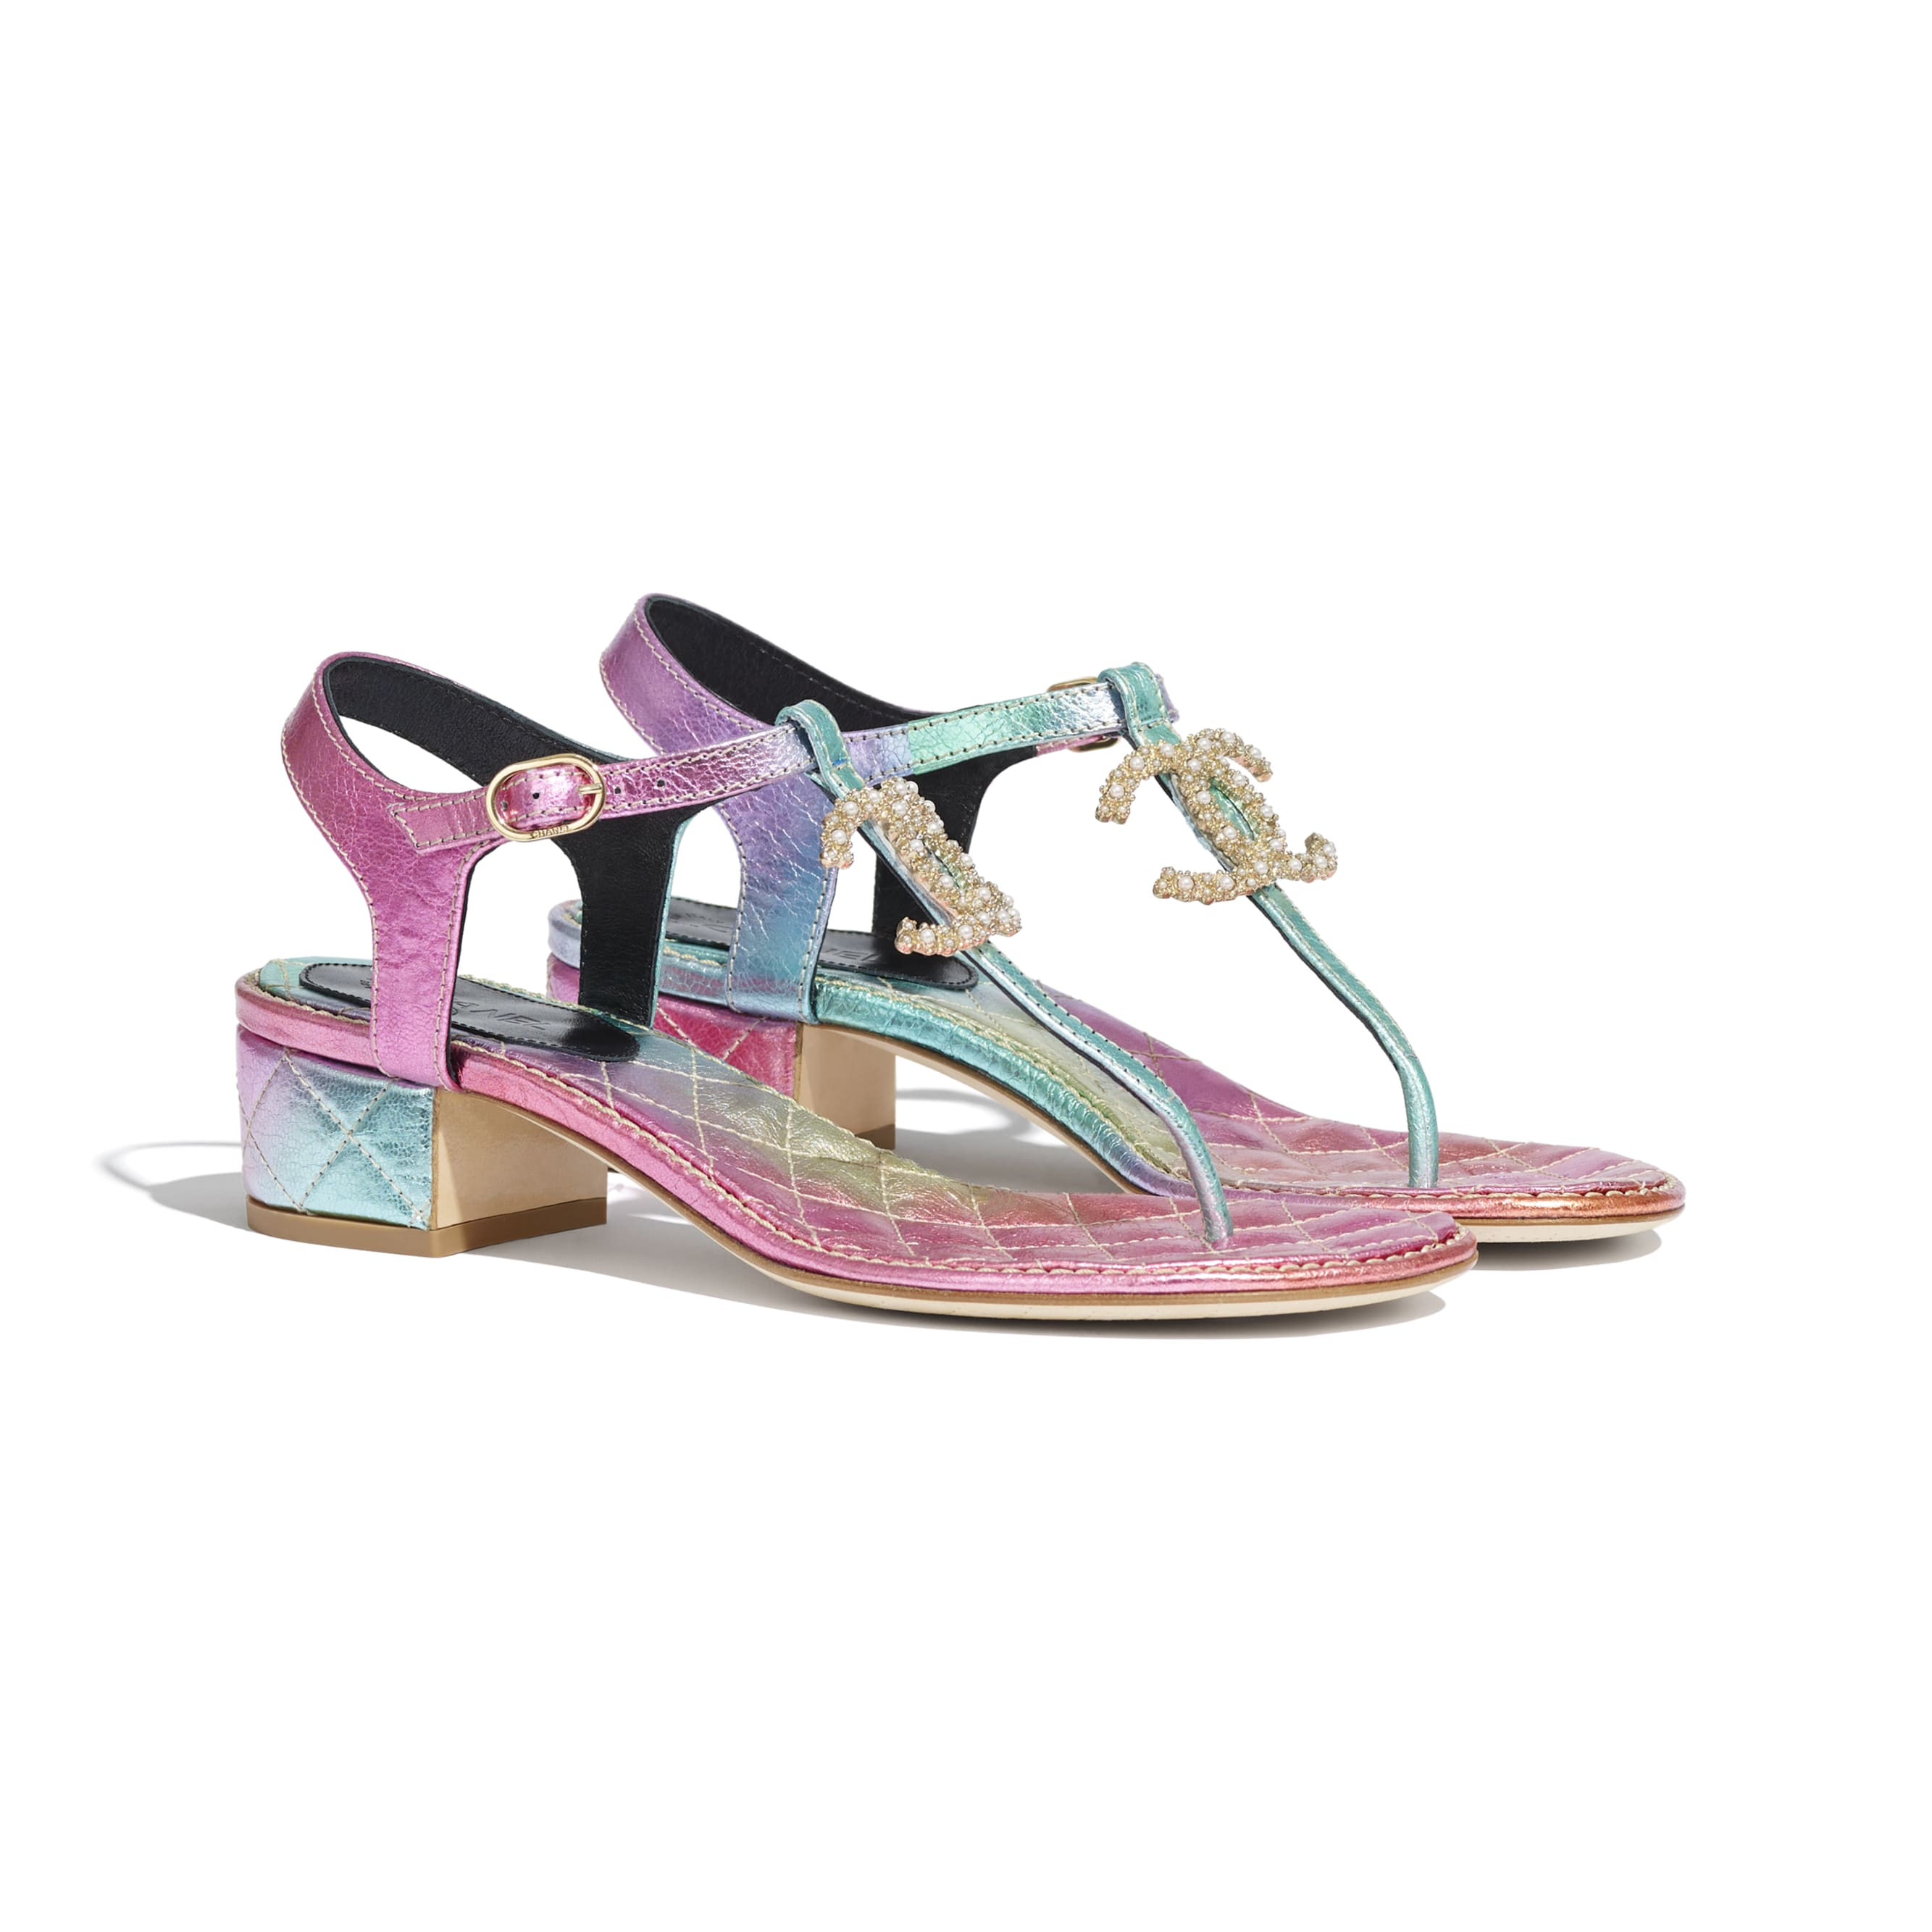 Sandals - Multicolour - Laminated Calfskin - CHANEL - Alternative view - see standard sized version